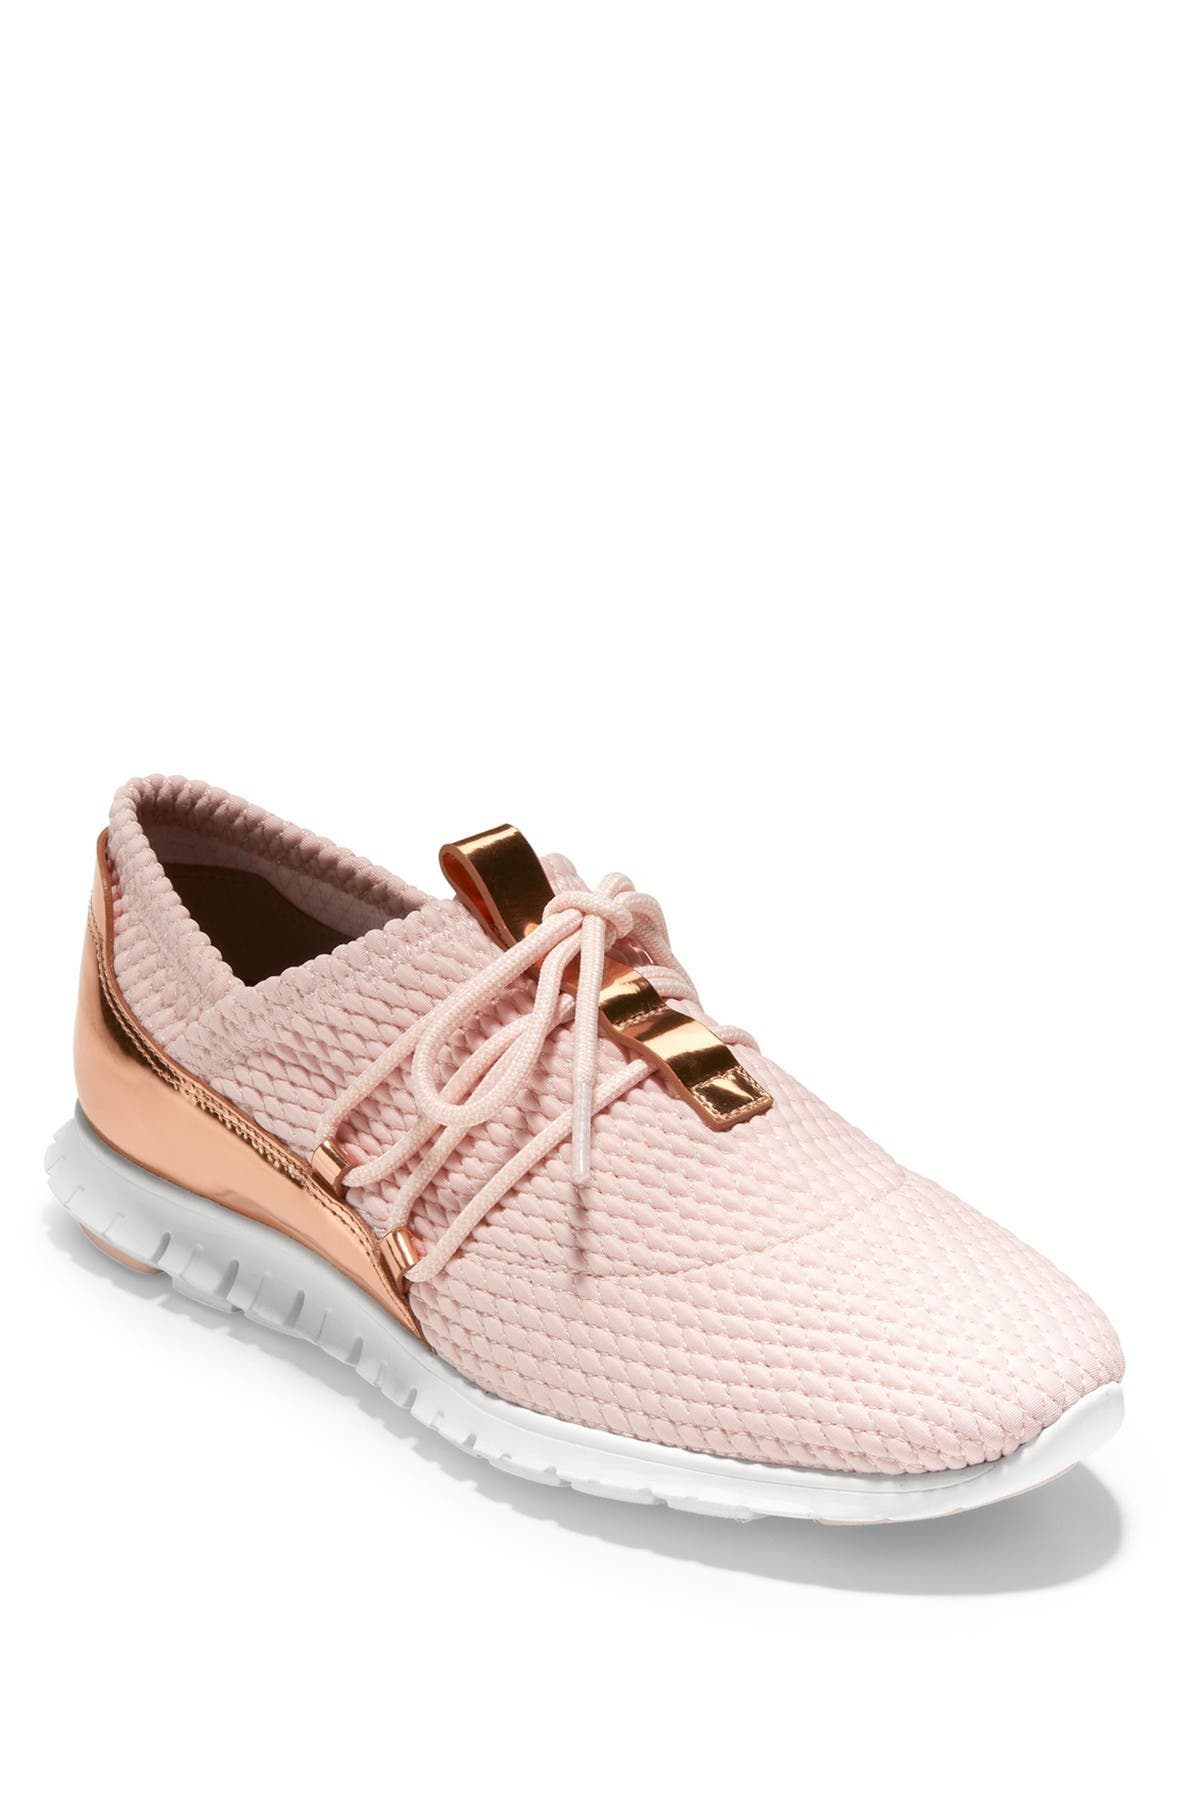 Image of Cole Haan Zerogrand Quilted Sneaker